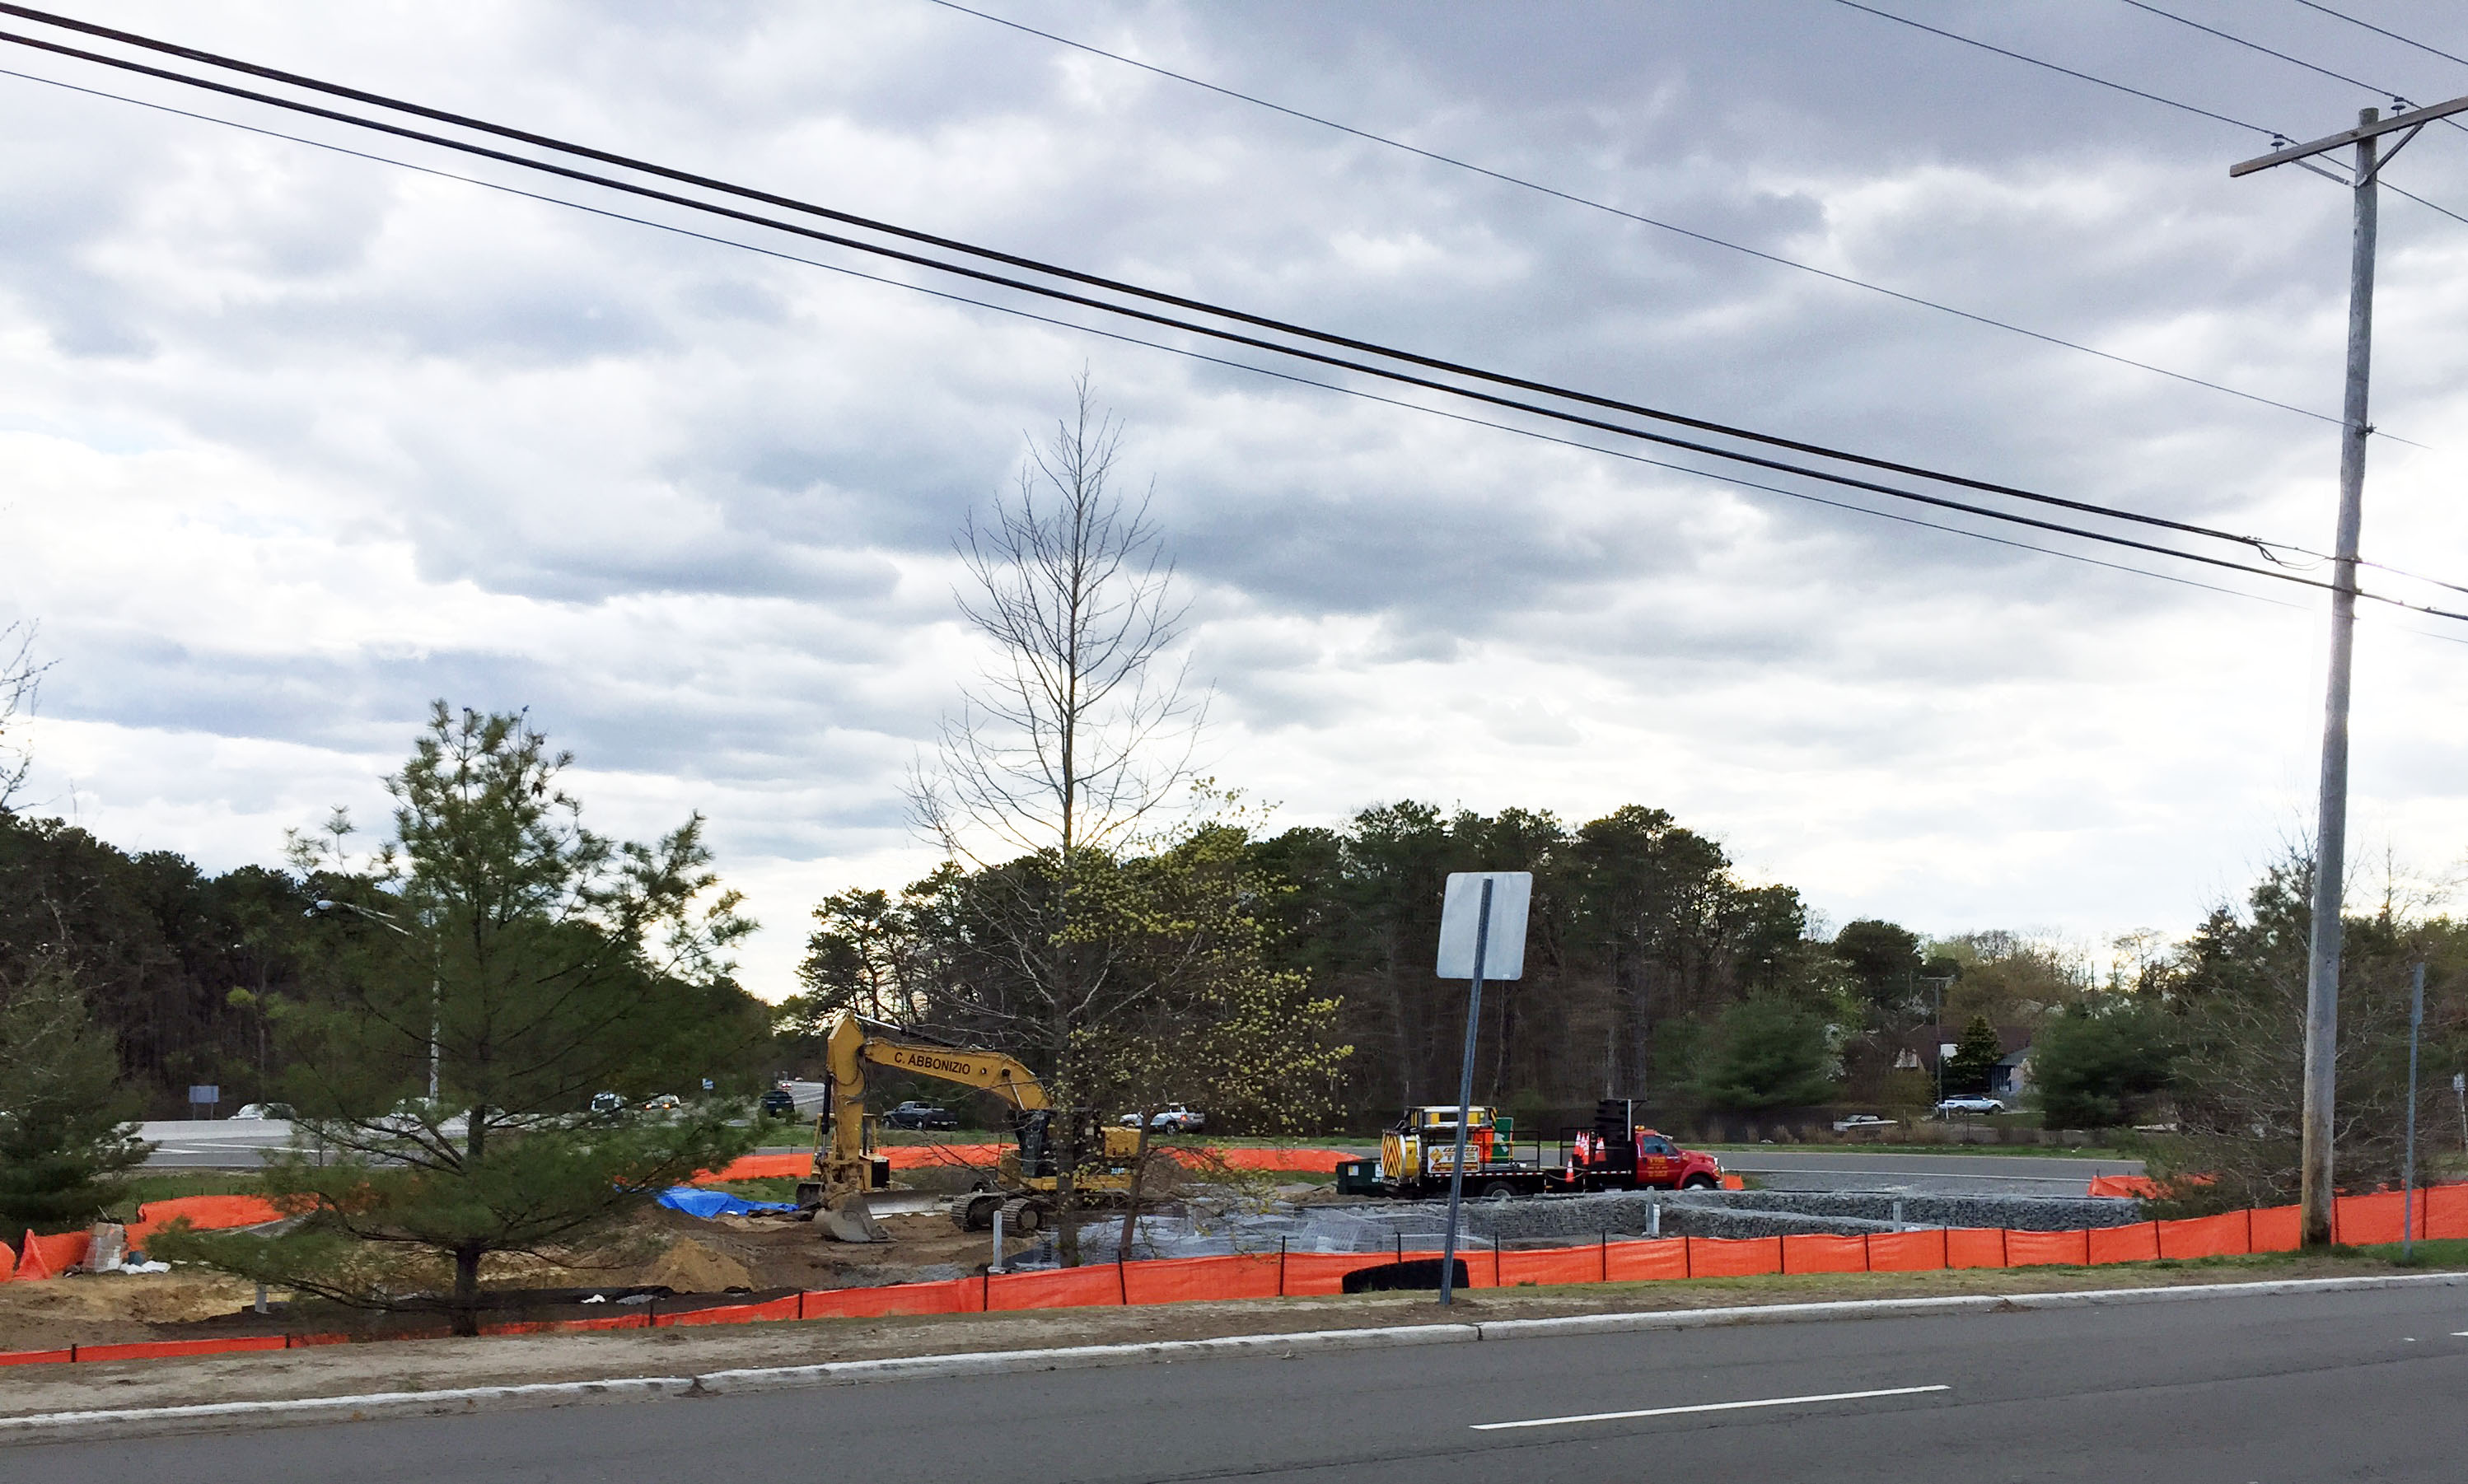 A drainage basin at Route 70 and Herbertsville Road in Brick under retrofitting construction. (Photo: Daniel Nee)